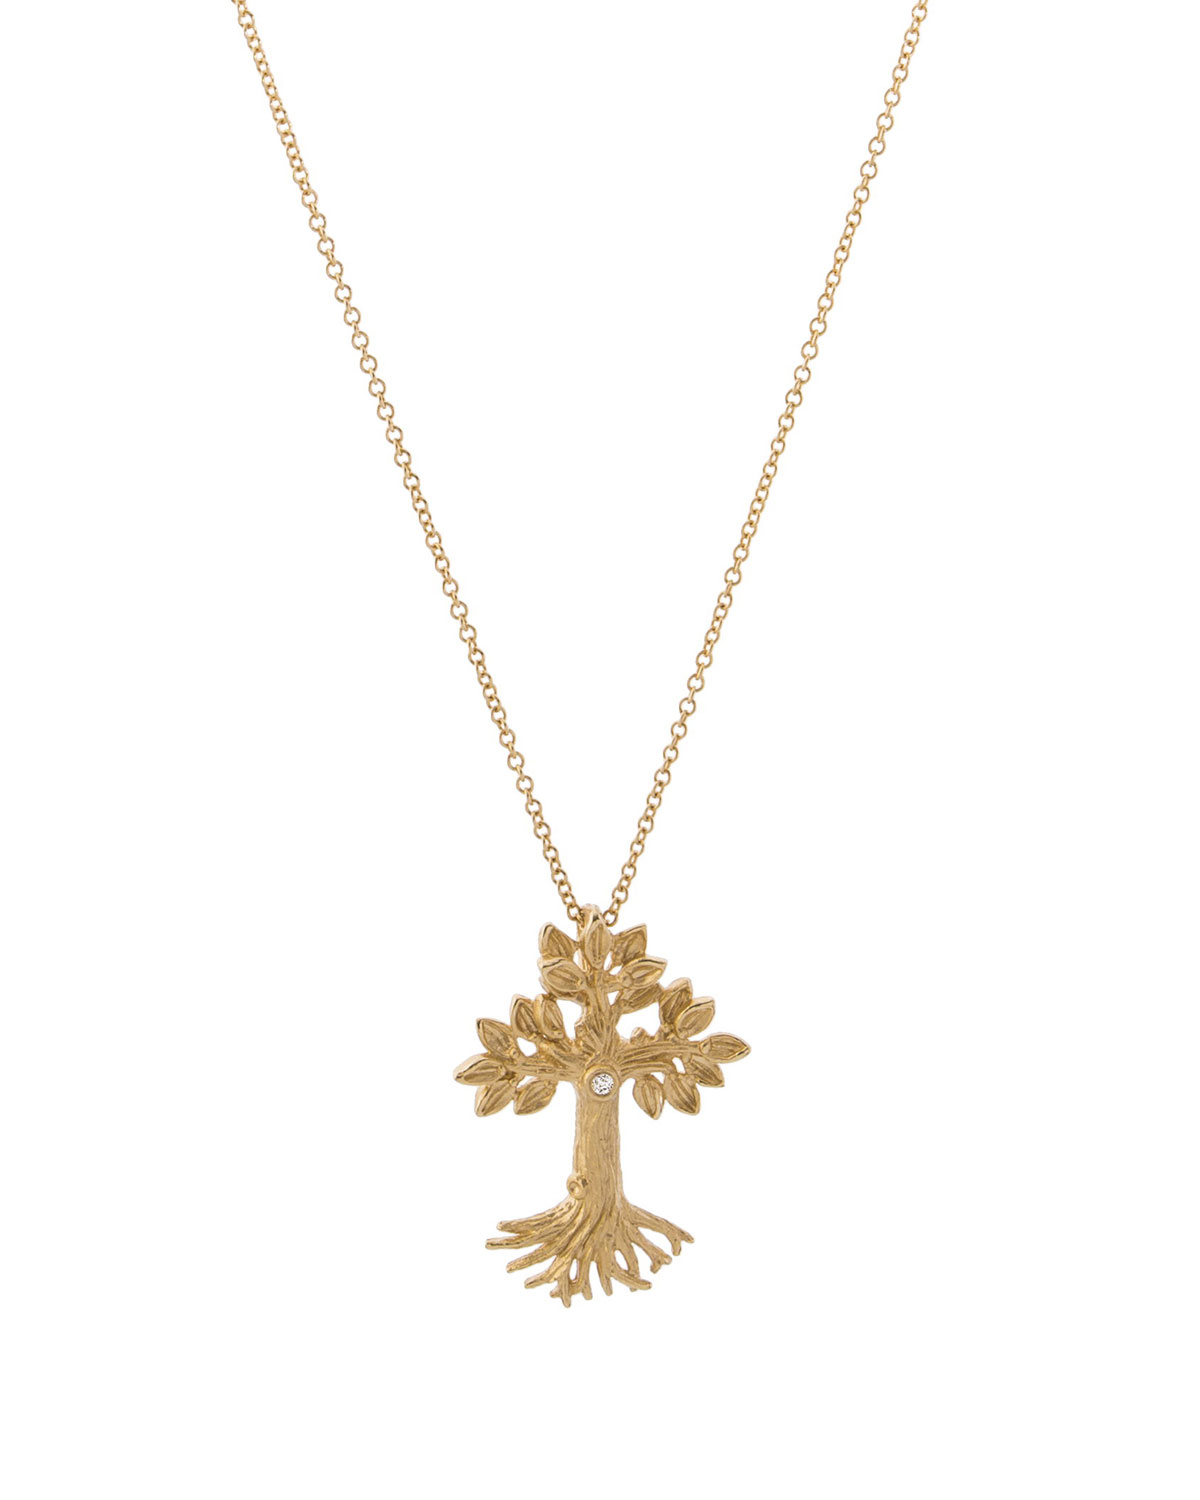 ARMENIAN TREE OF LIFE CROSS PENDANT NECKLACE IN 18K YELLOW GOLD